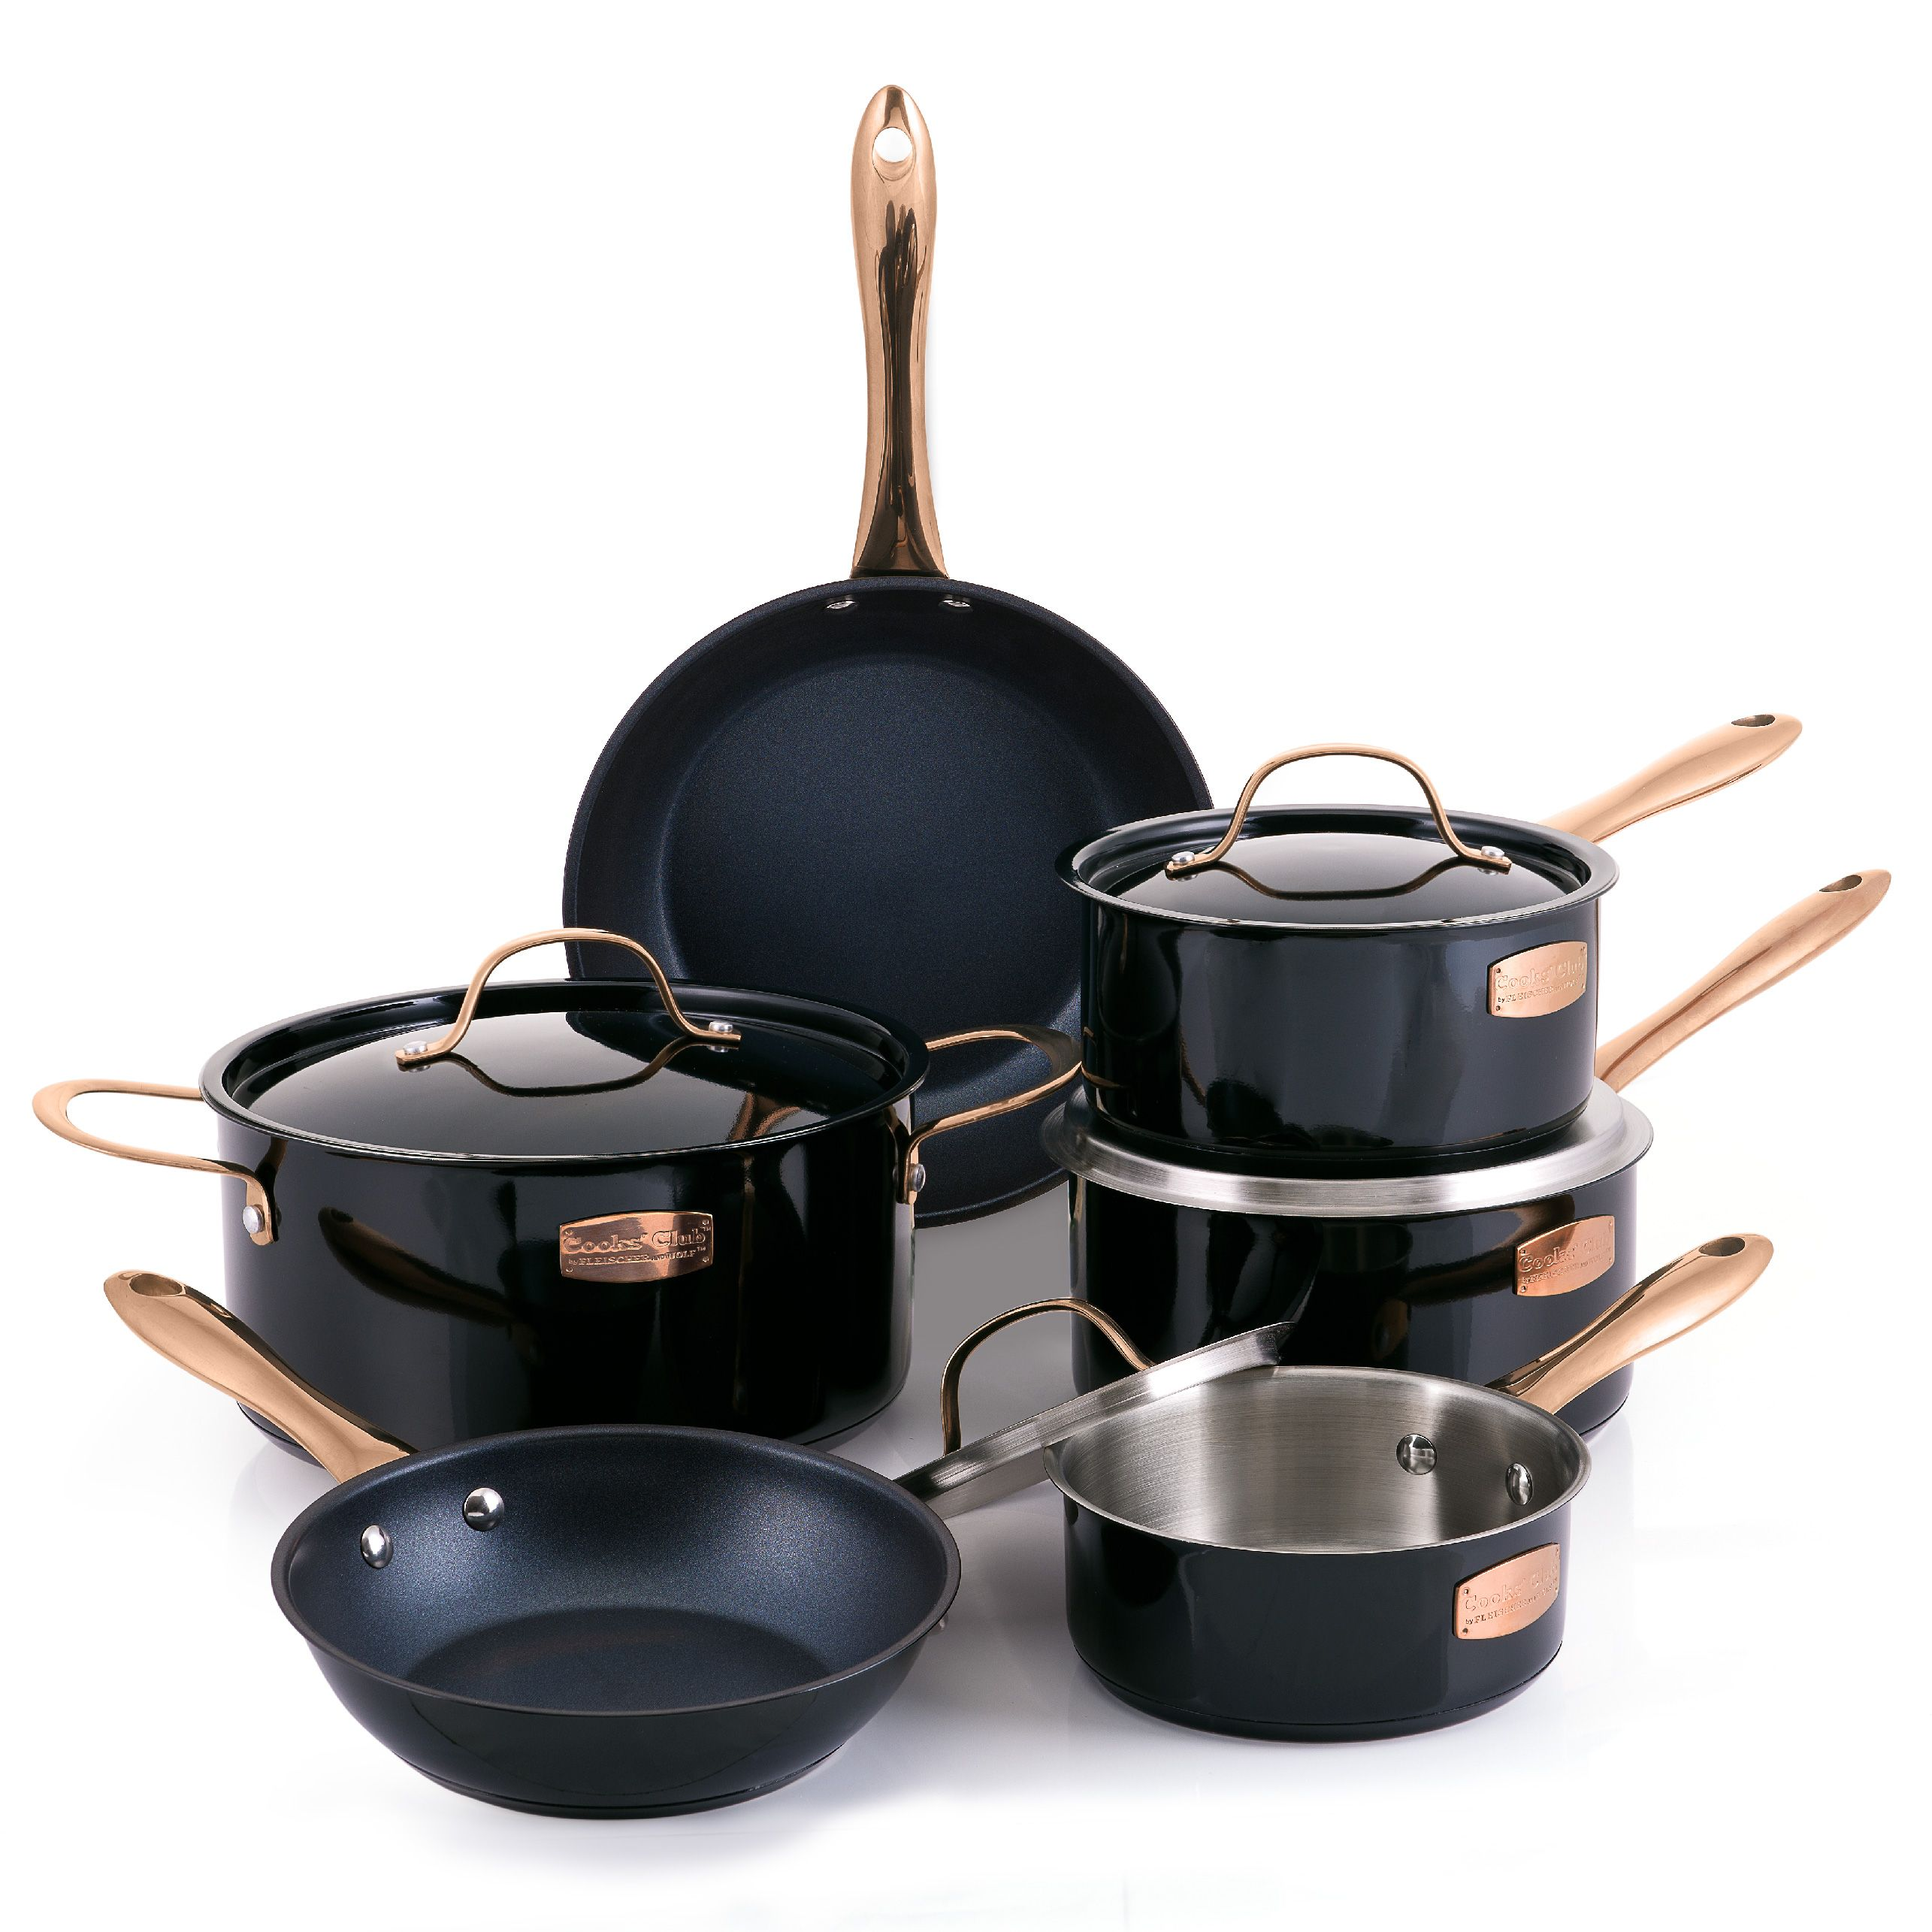 Home With Images Cookware Set Induction Cookware Pots And Pans